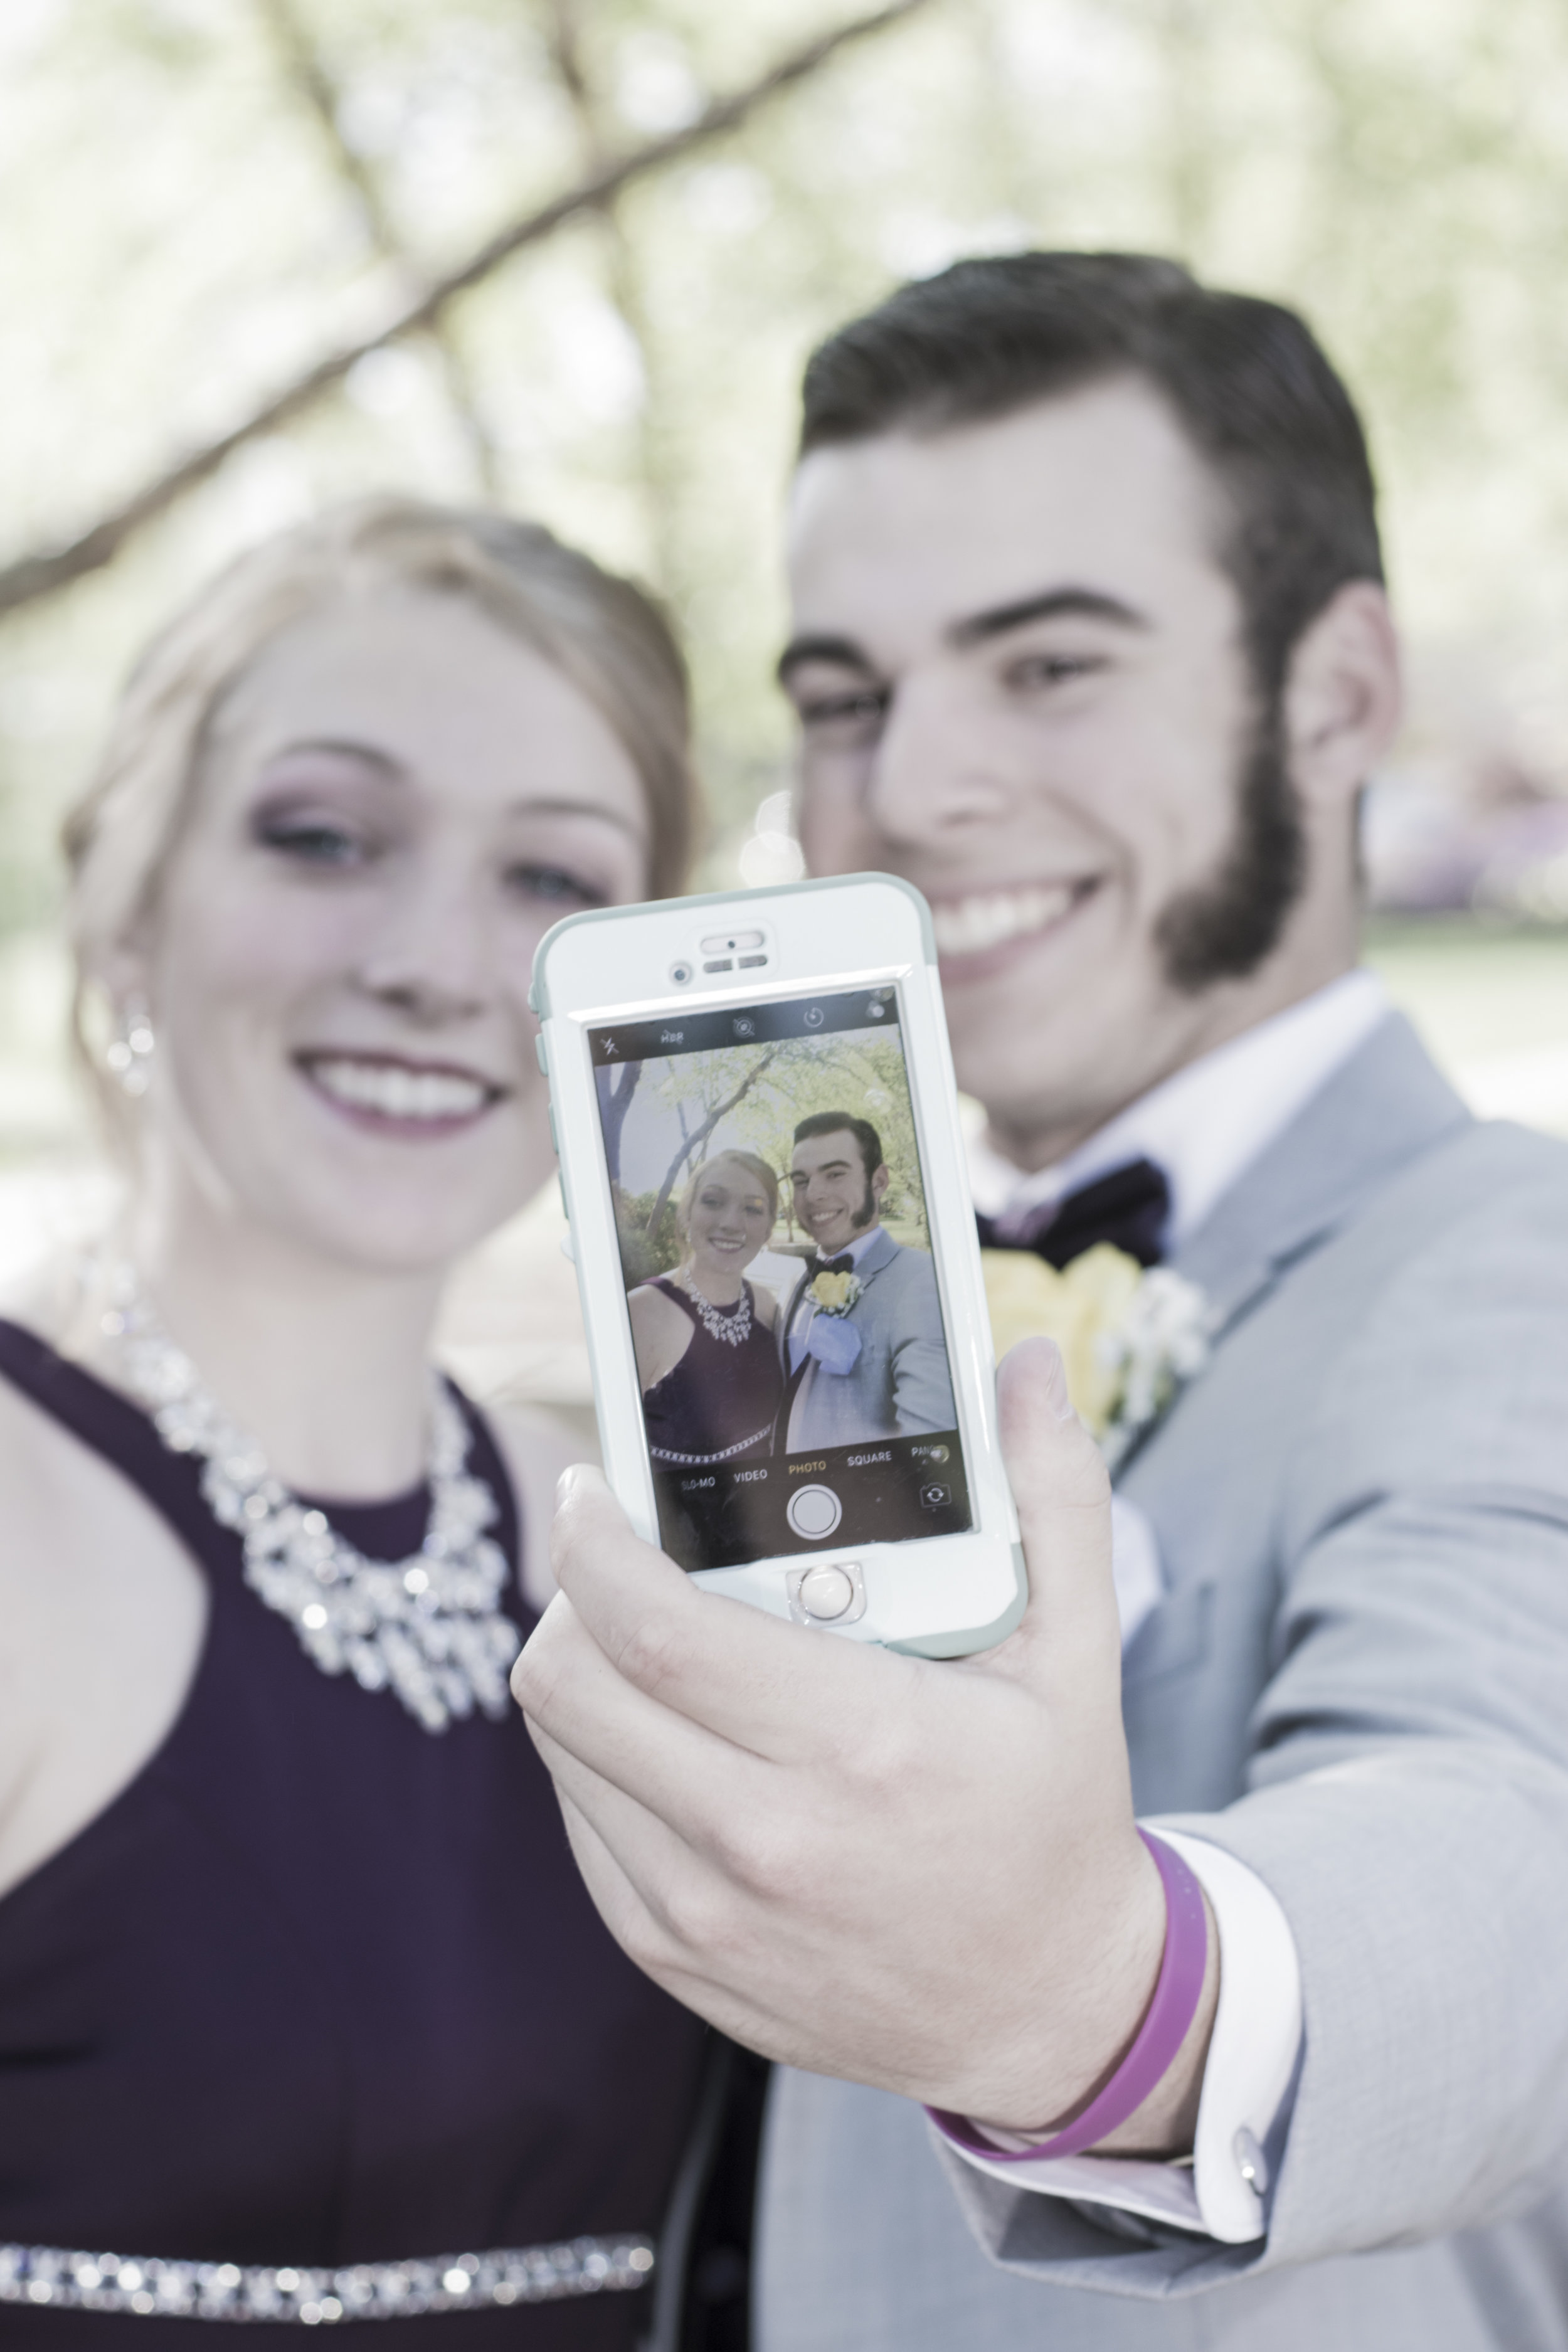 ethan-and-ally-prom-106-of-113_28061456048_o.jpg